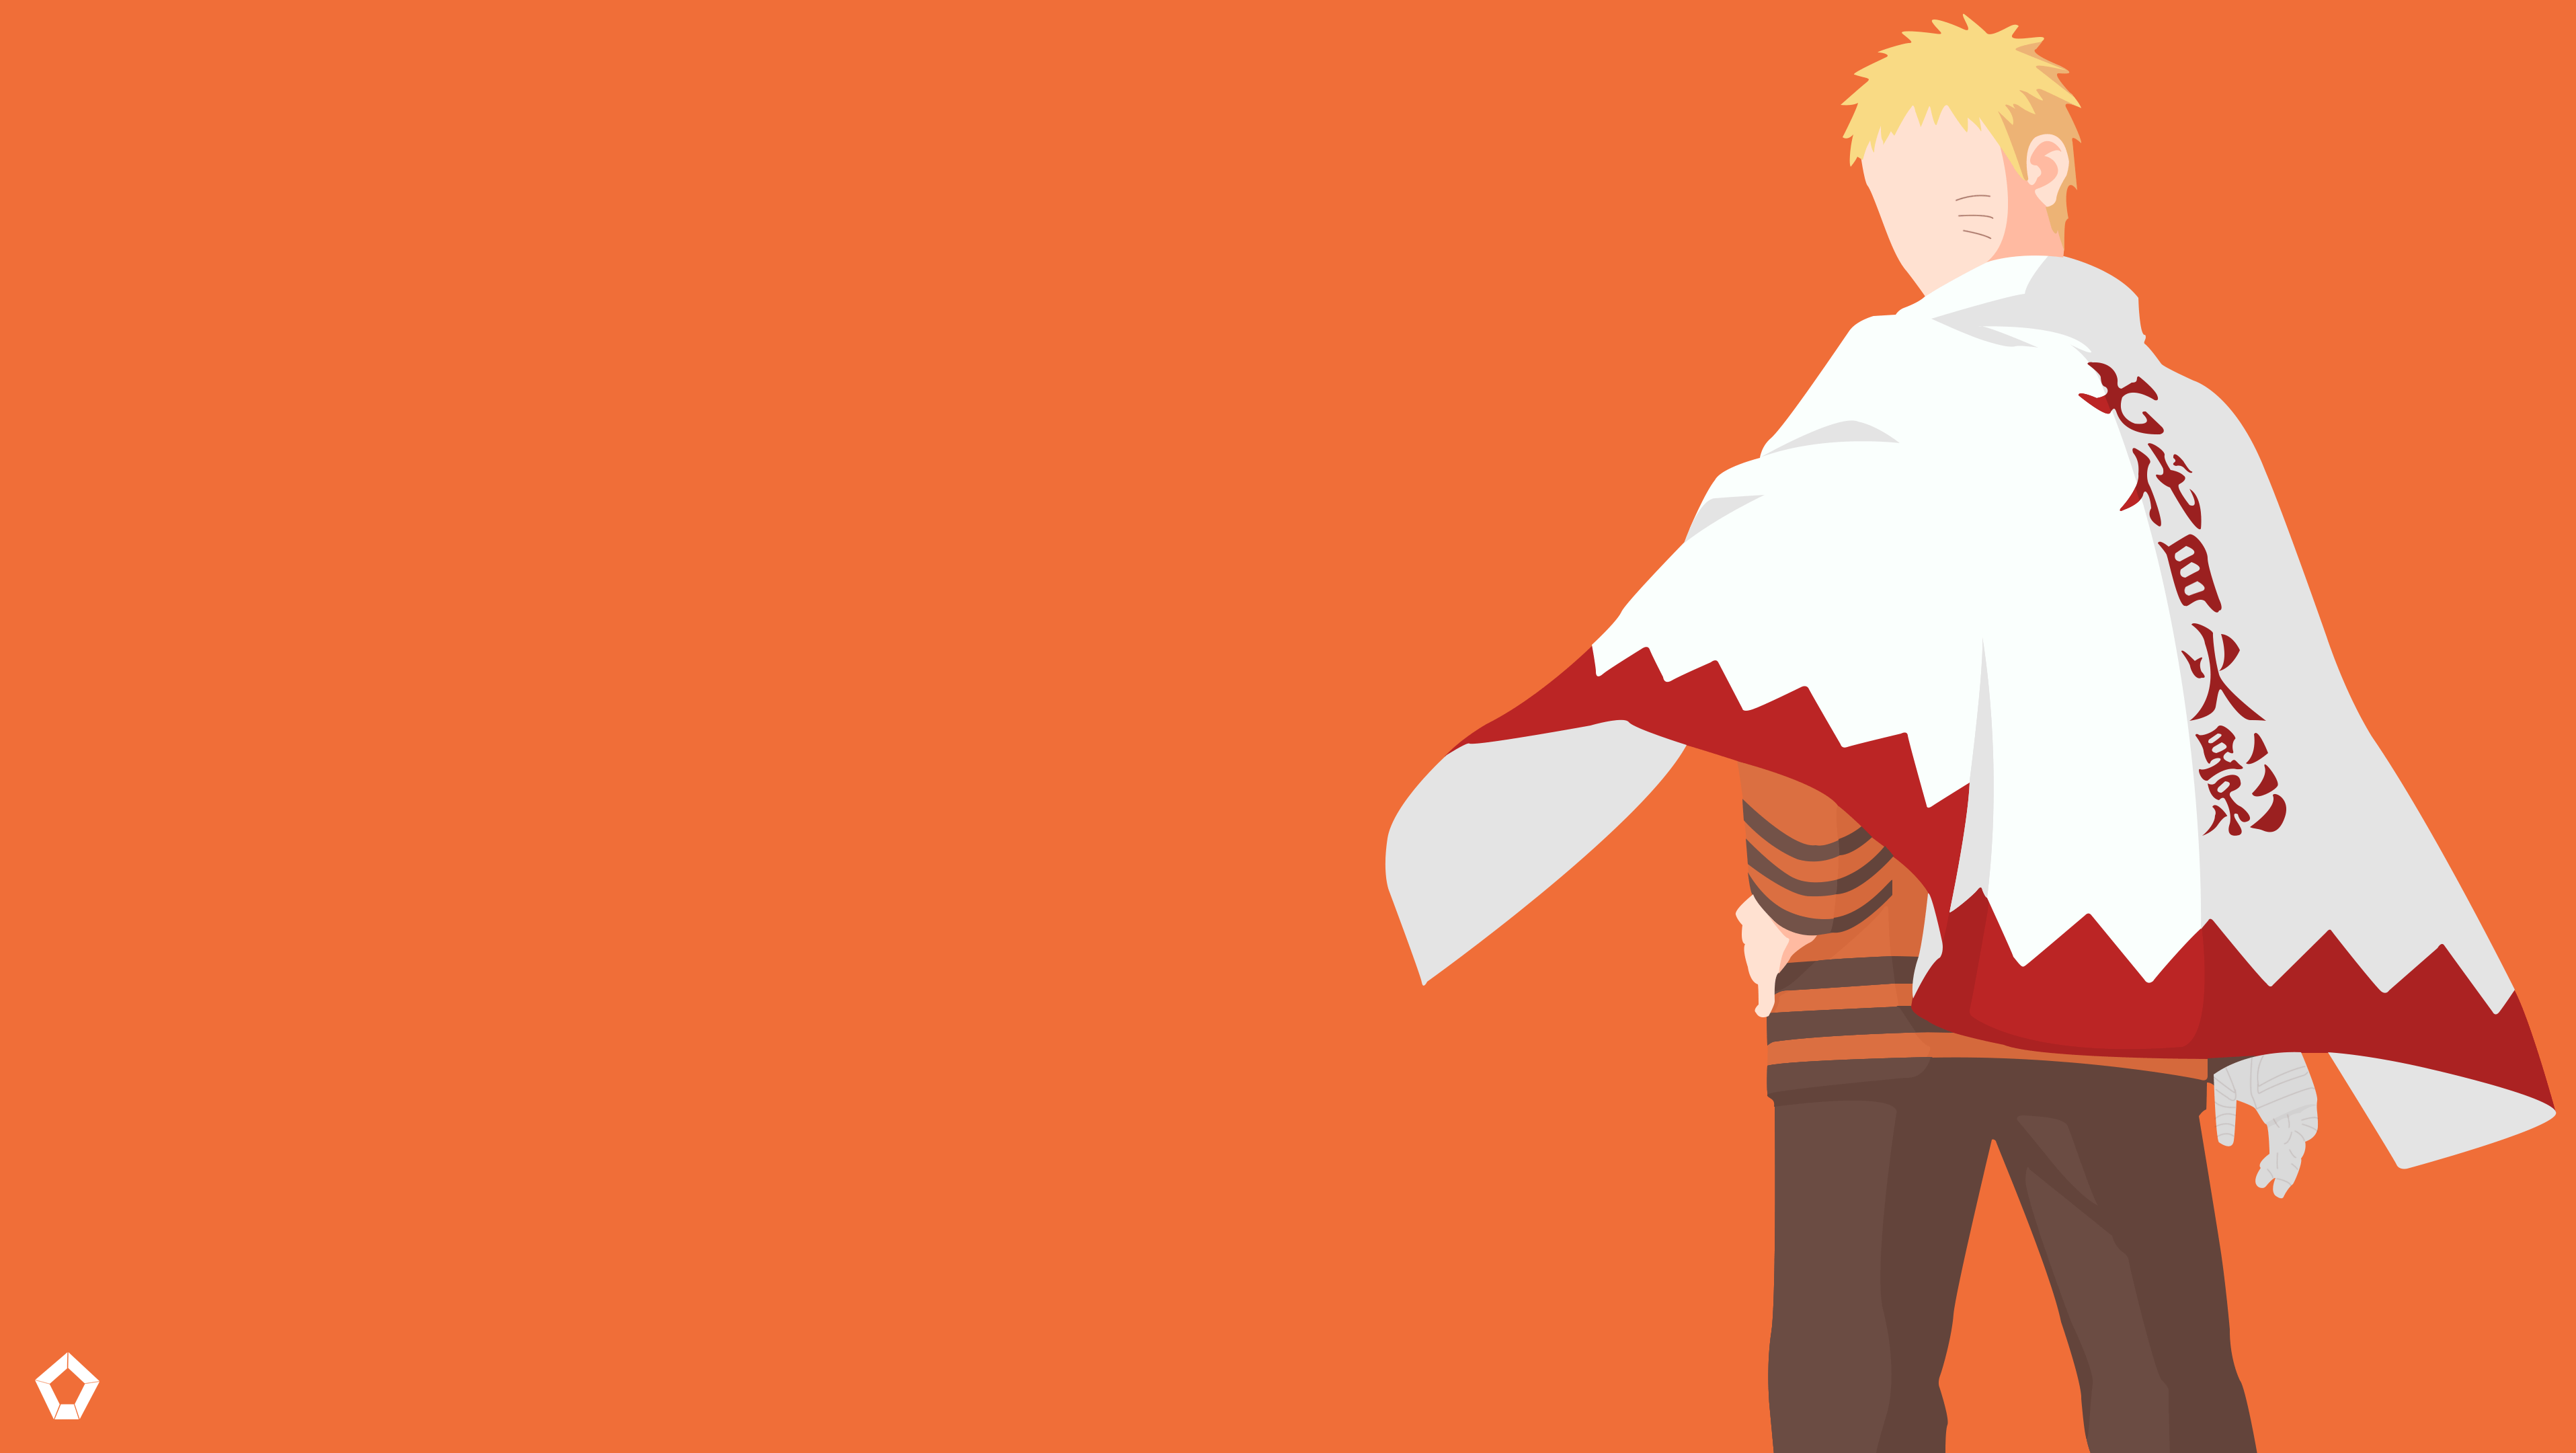 Naruto Hokage Wallpaper Posted By Zoey Thompson